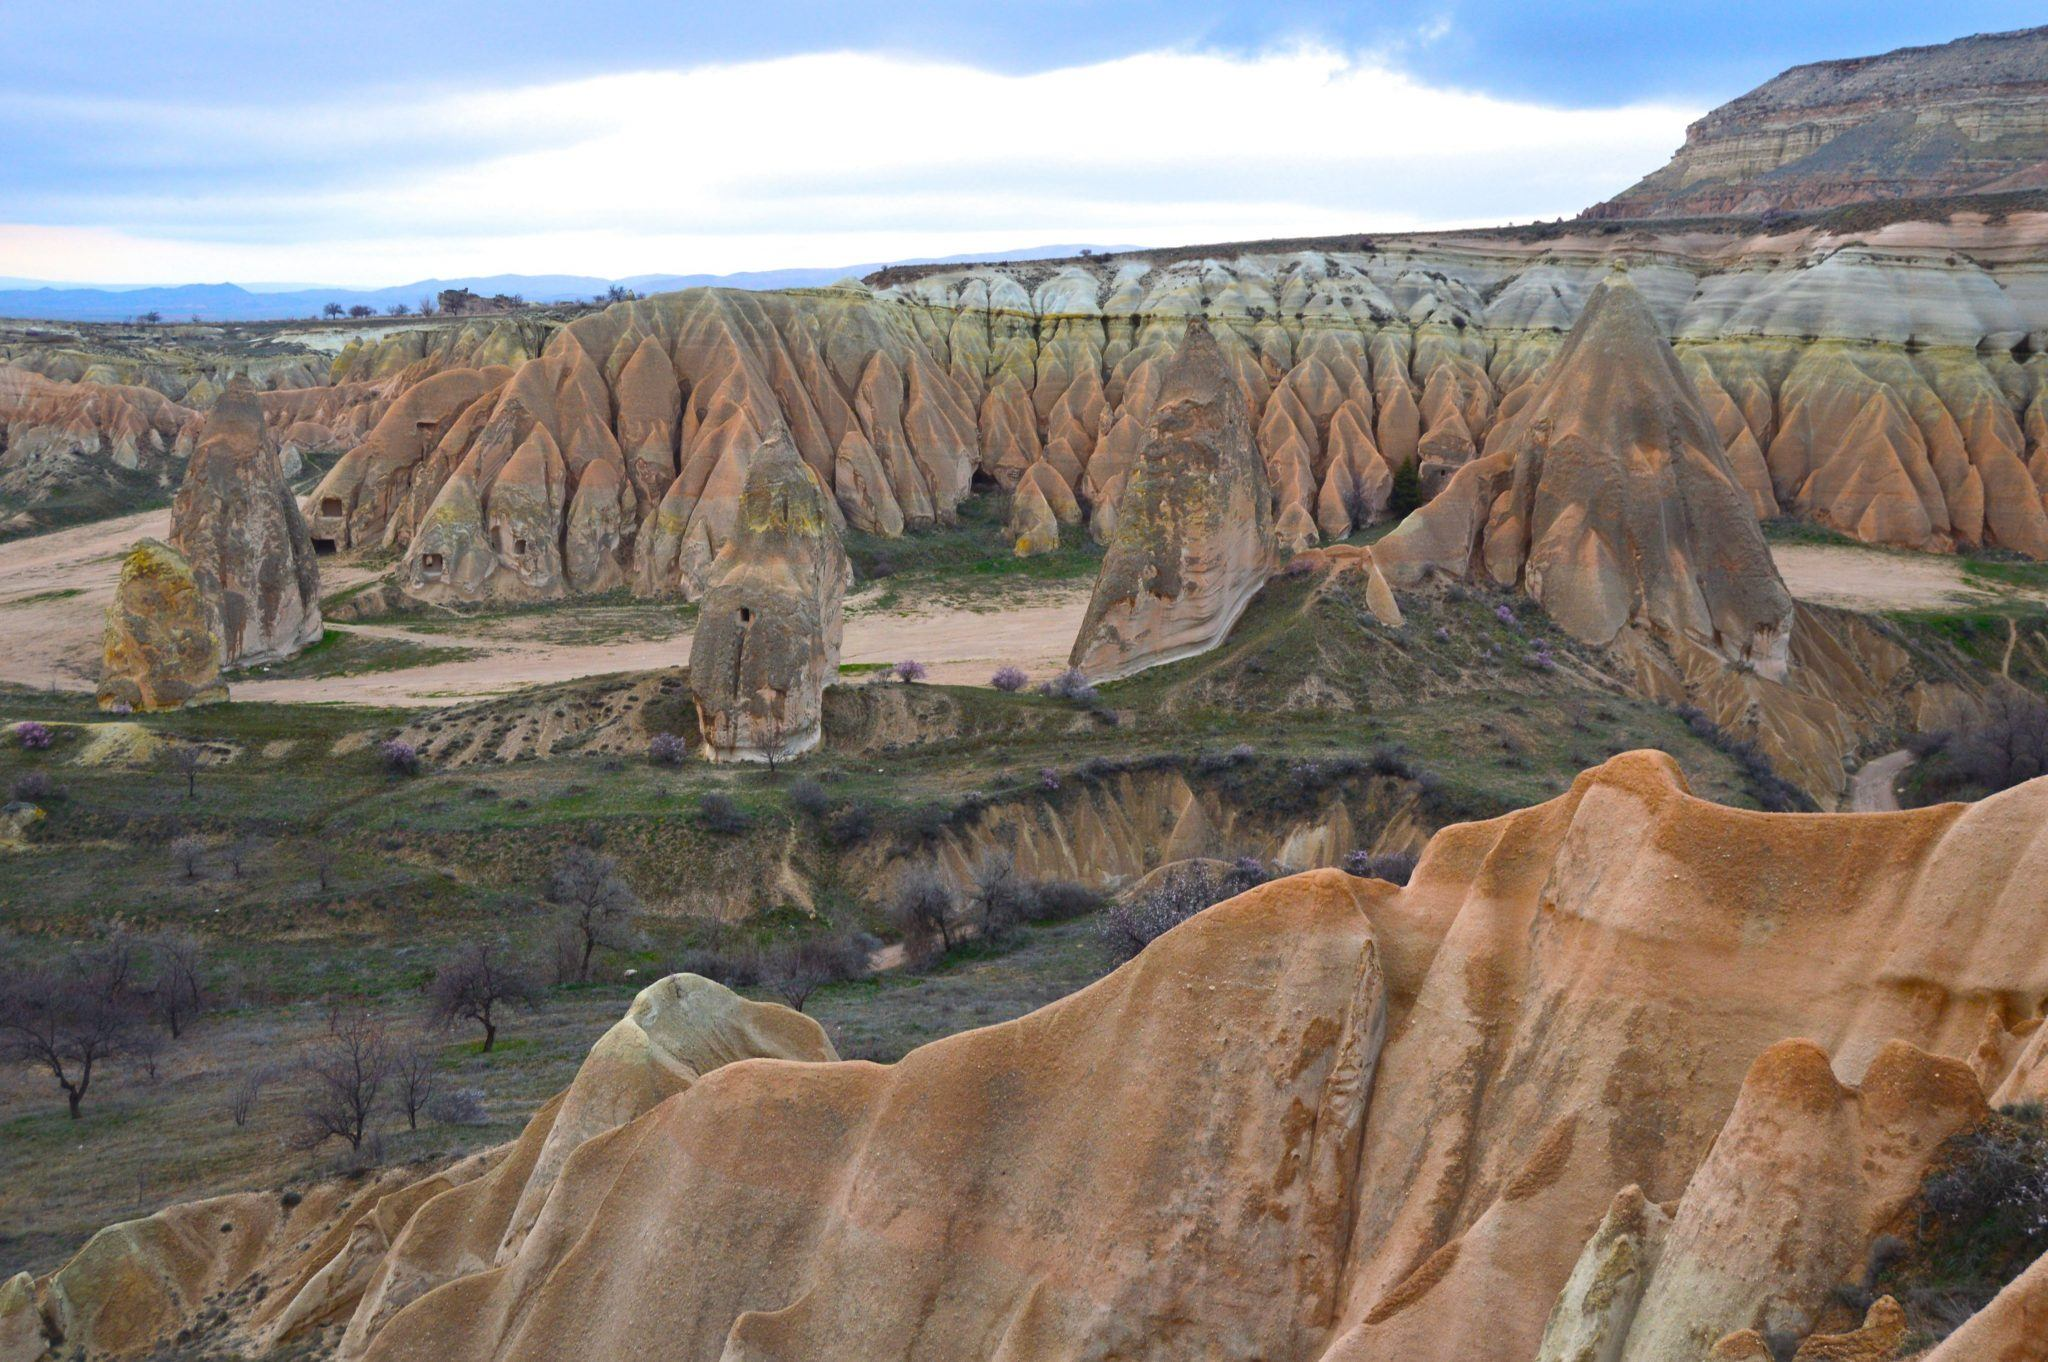 The Rose Valley Cappadocia